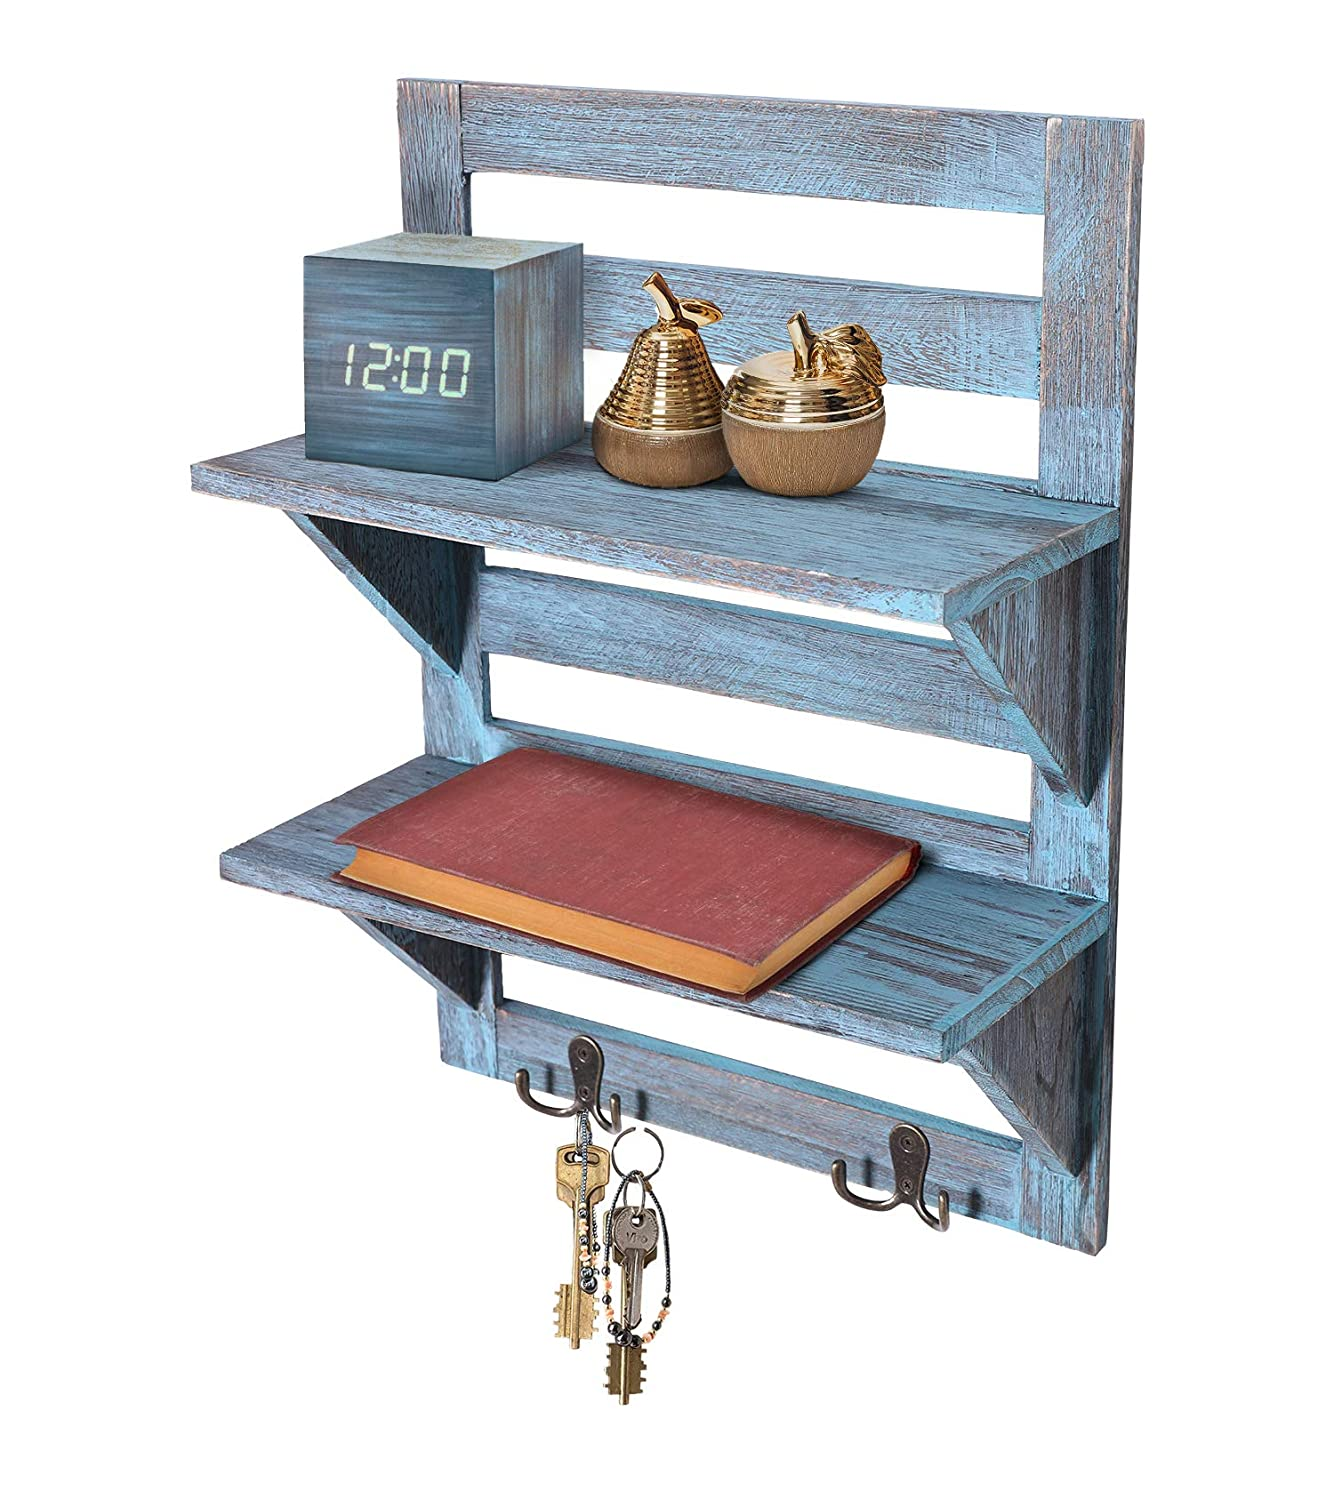 Comfify Rustic Wall Mounted Shelves – Kitchen or Bathroom Farmhouse Rustic Décor – Vintage Wall Shelves with Two Double Iron Hooks & 2-Tier Storage Rack – Decorative Wall Shelf Organizer- Rustic Blue